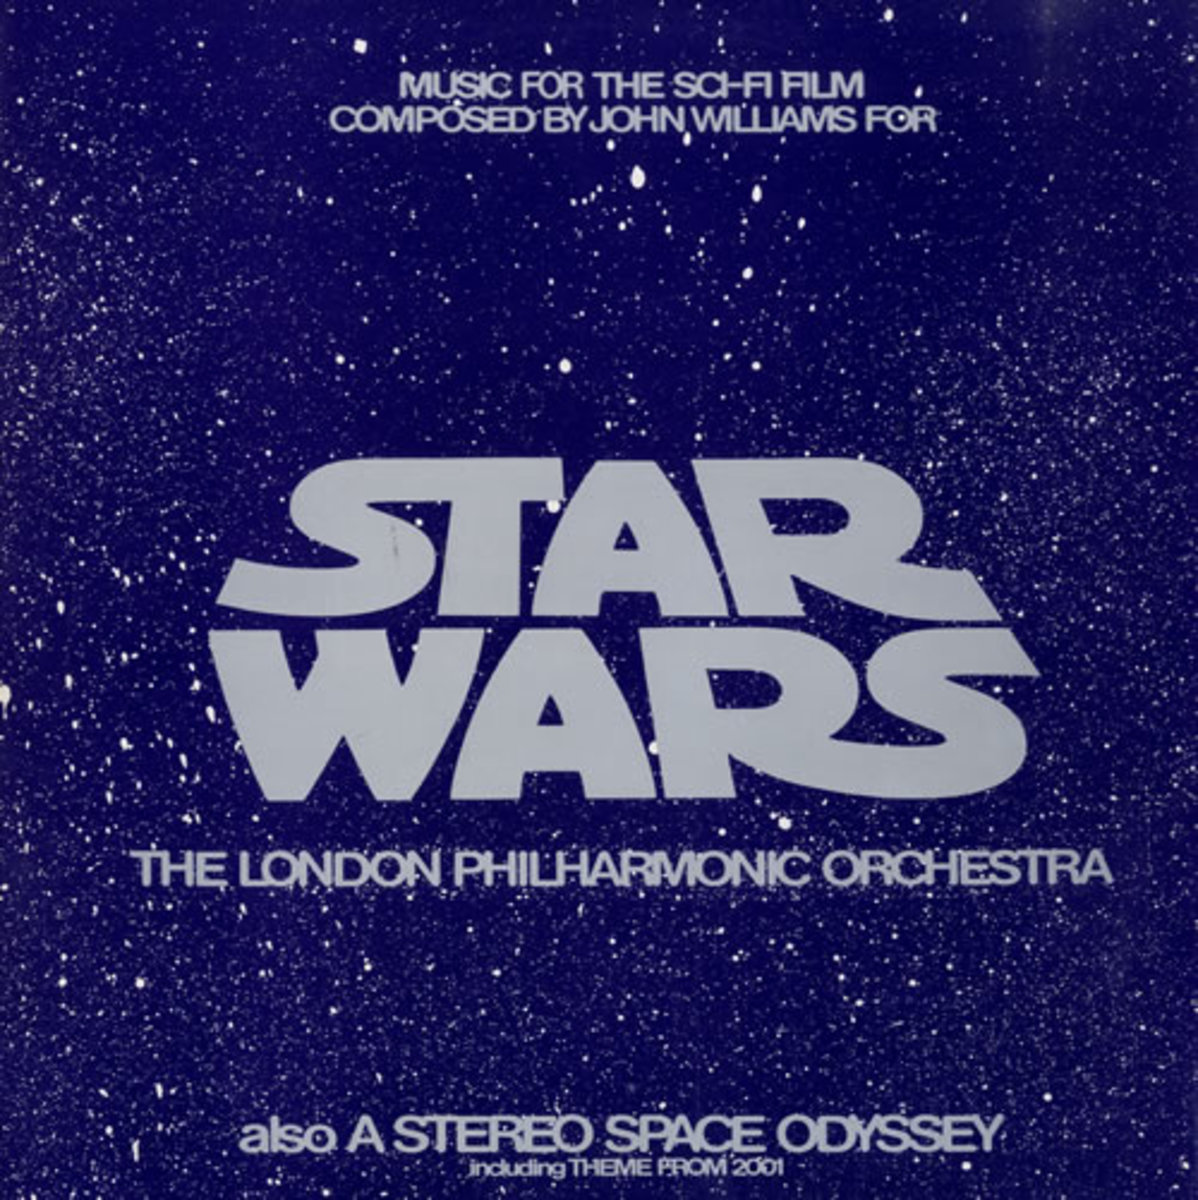 """Star Wars and A Stereo Space Odyssey Stereo Gold Award SGA-1000 12"""" LP Vinyl Record, US Pressing (1977)"""